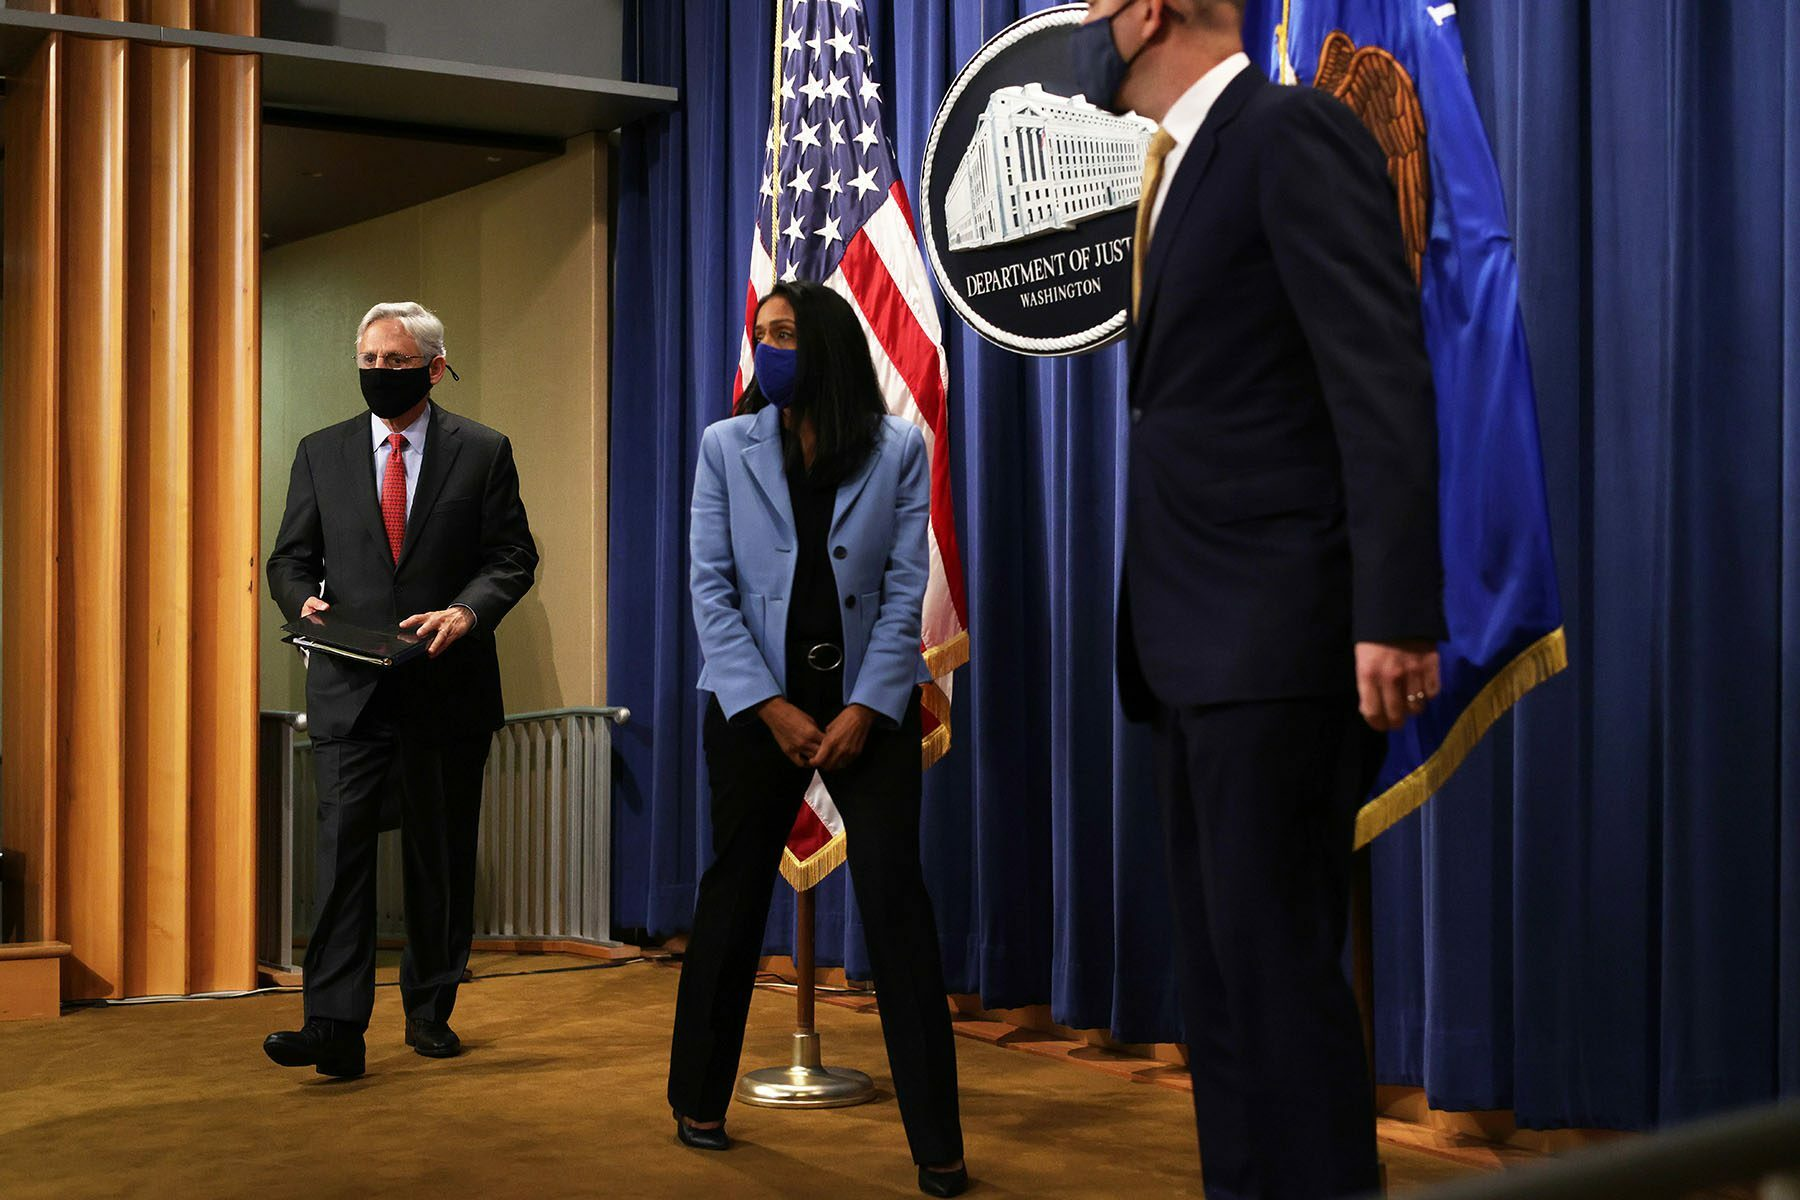 U.S. Attorney General Merrick Garland arrives at a news conference to announce a civil enforcement action at the Department of Justice.